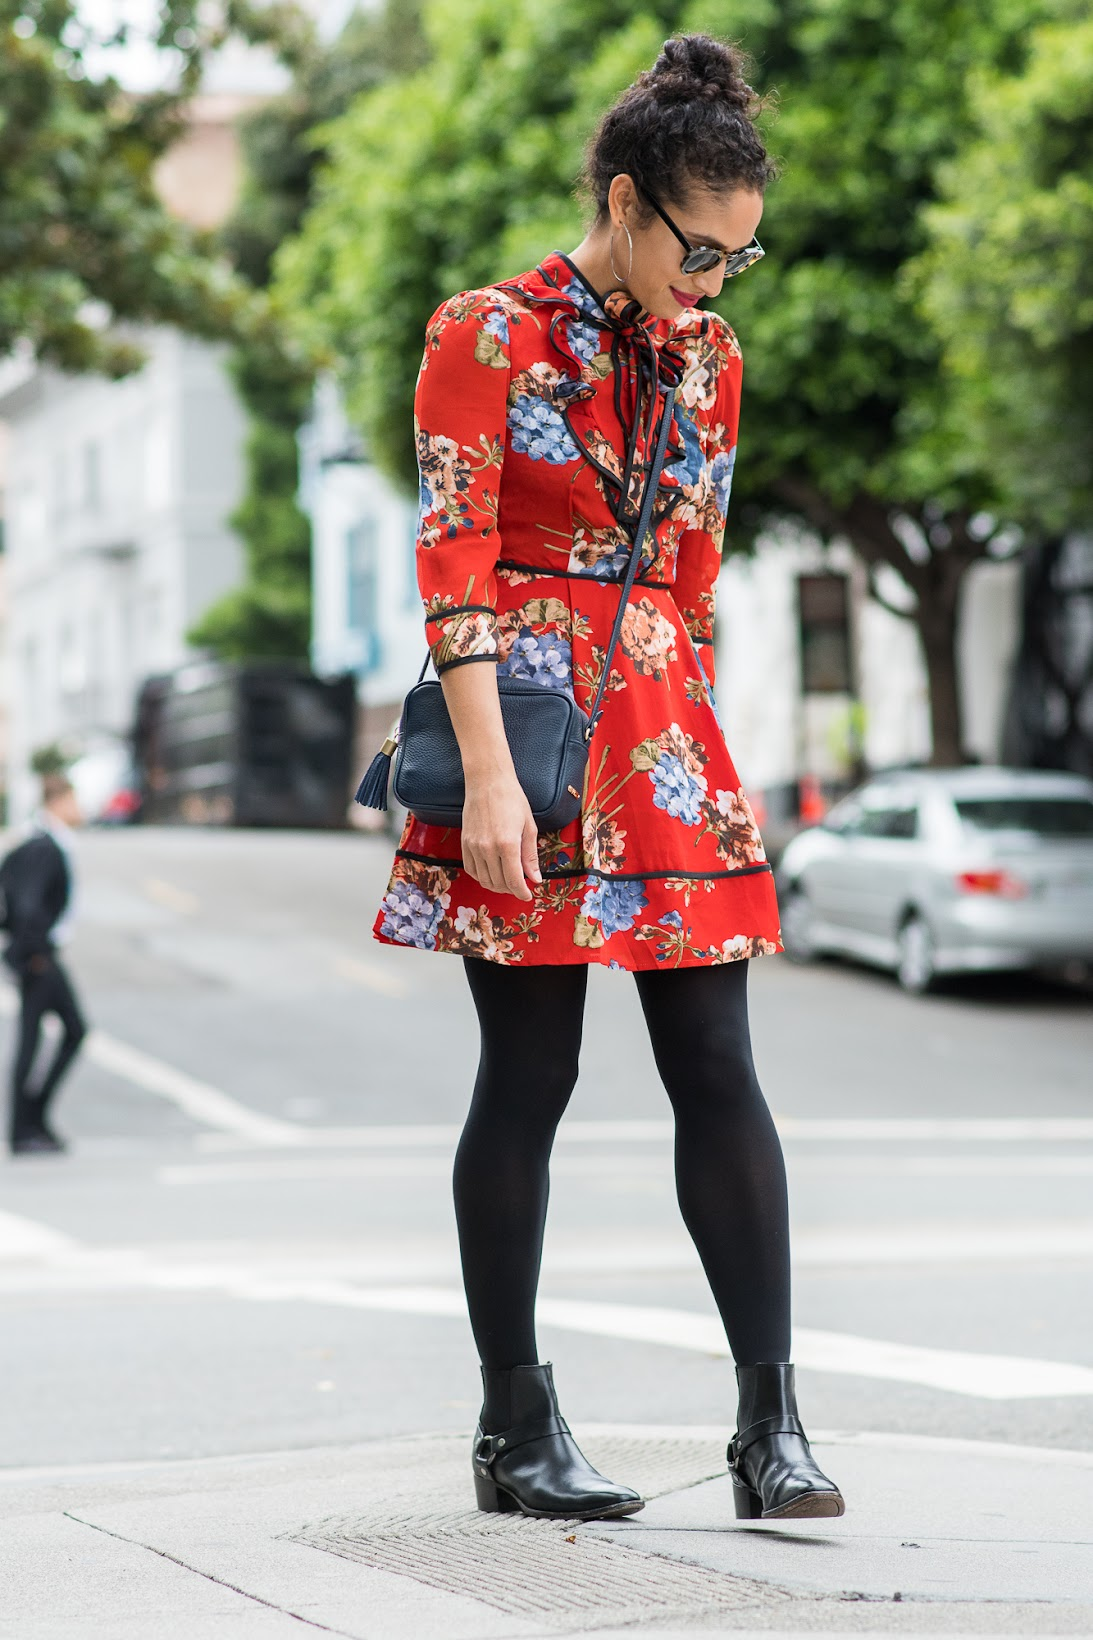 re:named dress, shopbop re:named dress, red floral dress, how to wear tights during the fall, fall style, Frye boots, Frye harness boots, red lips with red lipstick